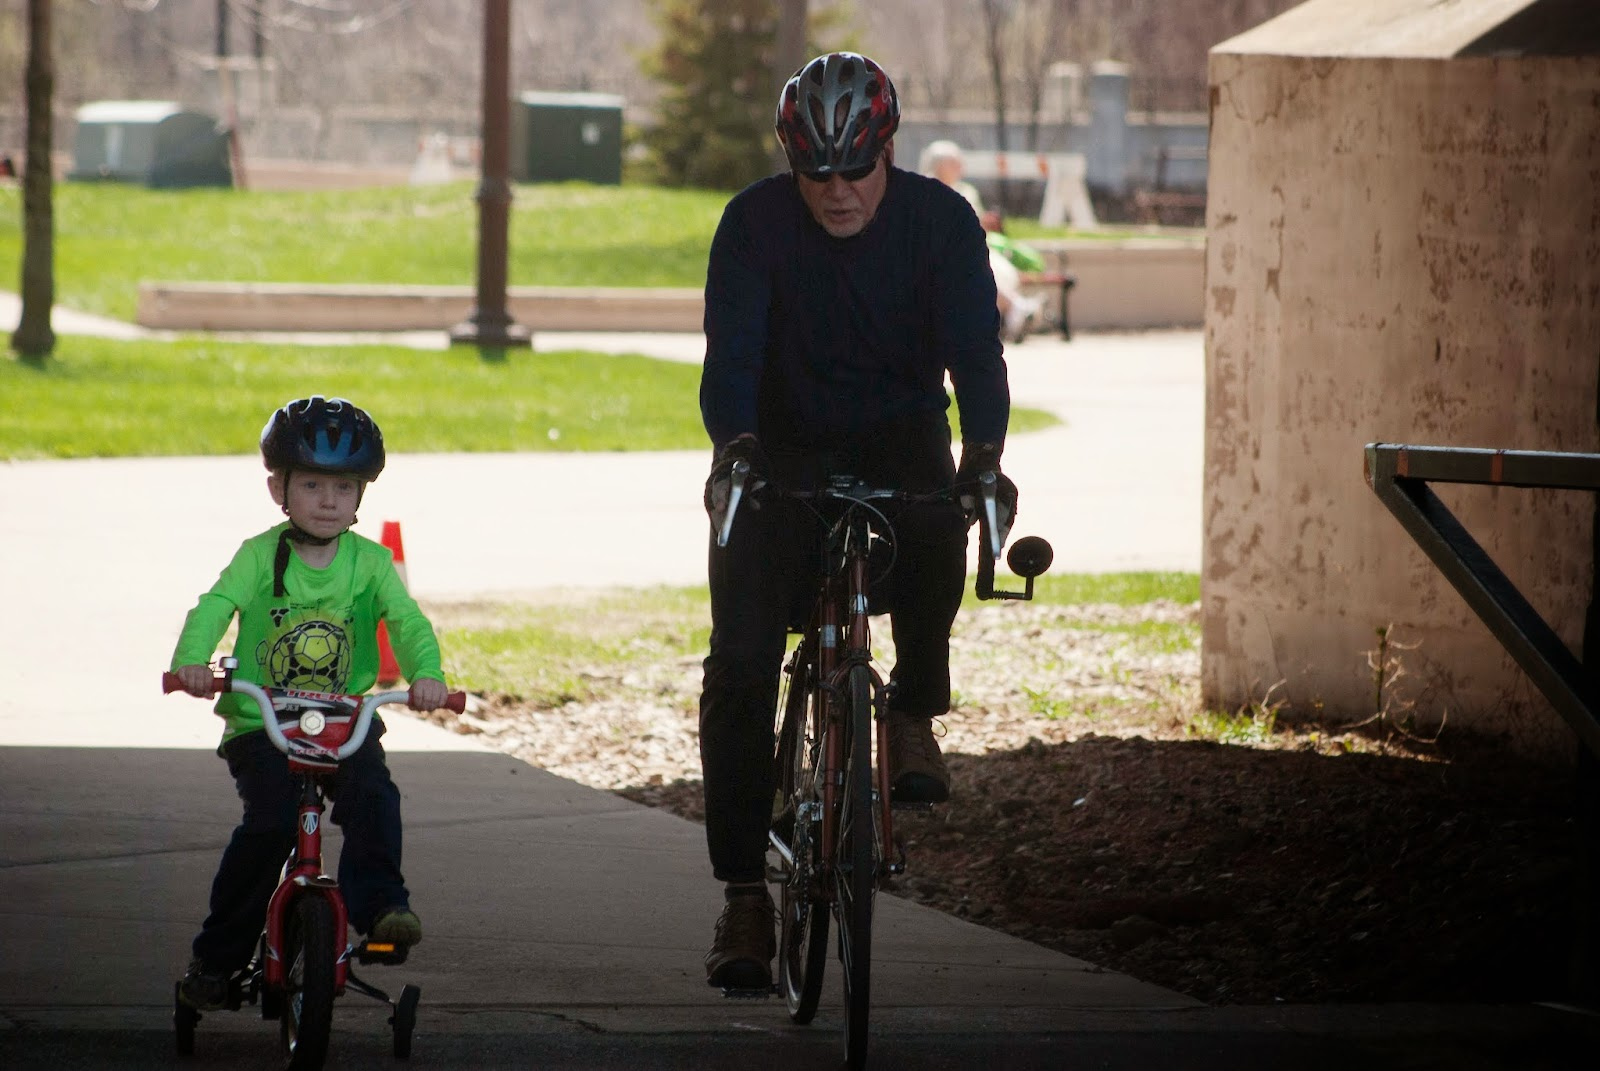 Bicycle Wausau Rodeo & Safety Day - May 10, 2014